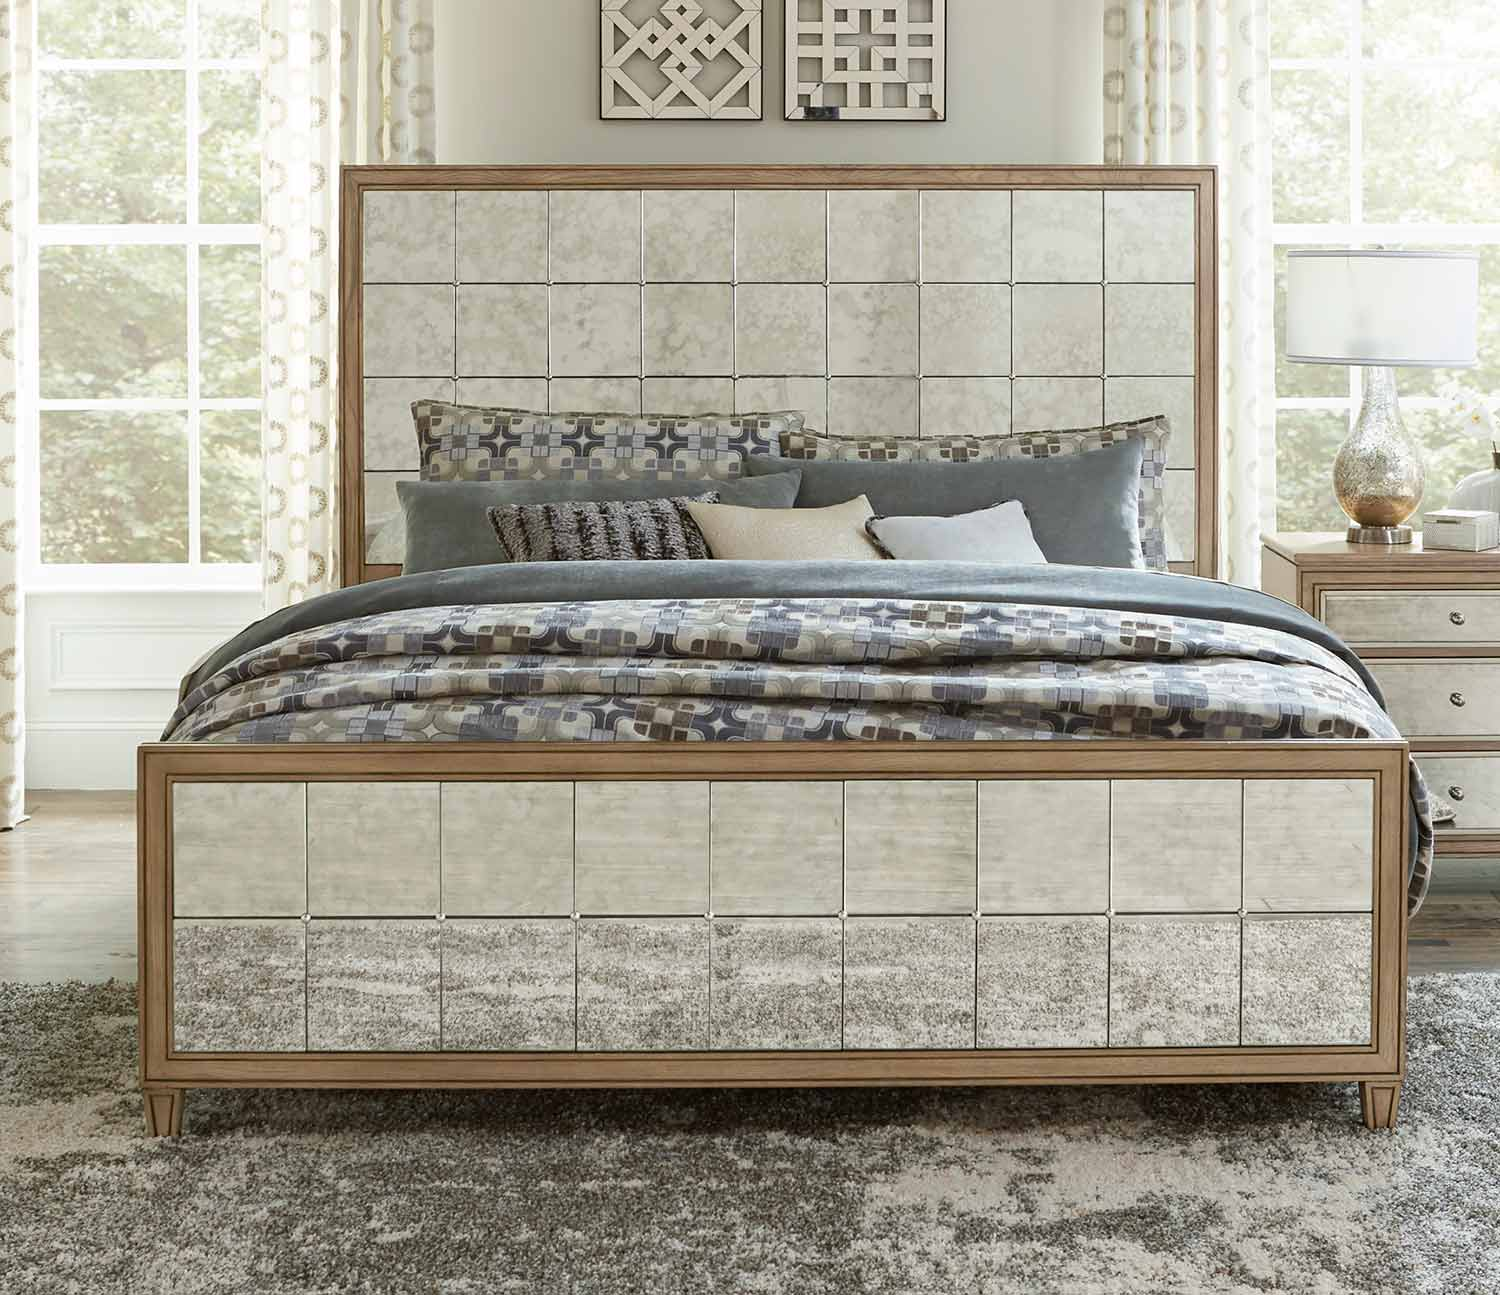 Homelegance Kalette Panel Bed - Light Oak - Antiqued mirrored